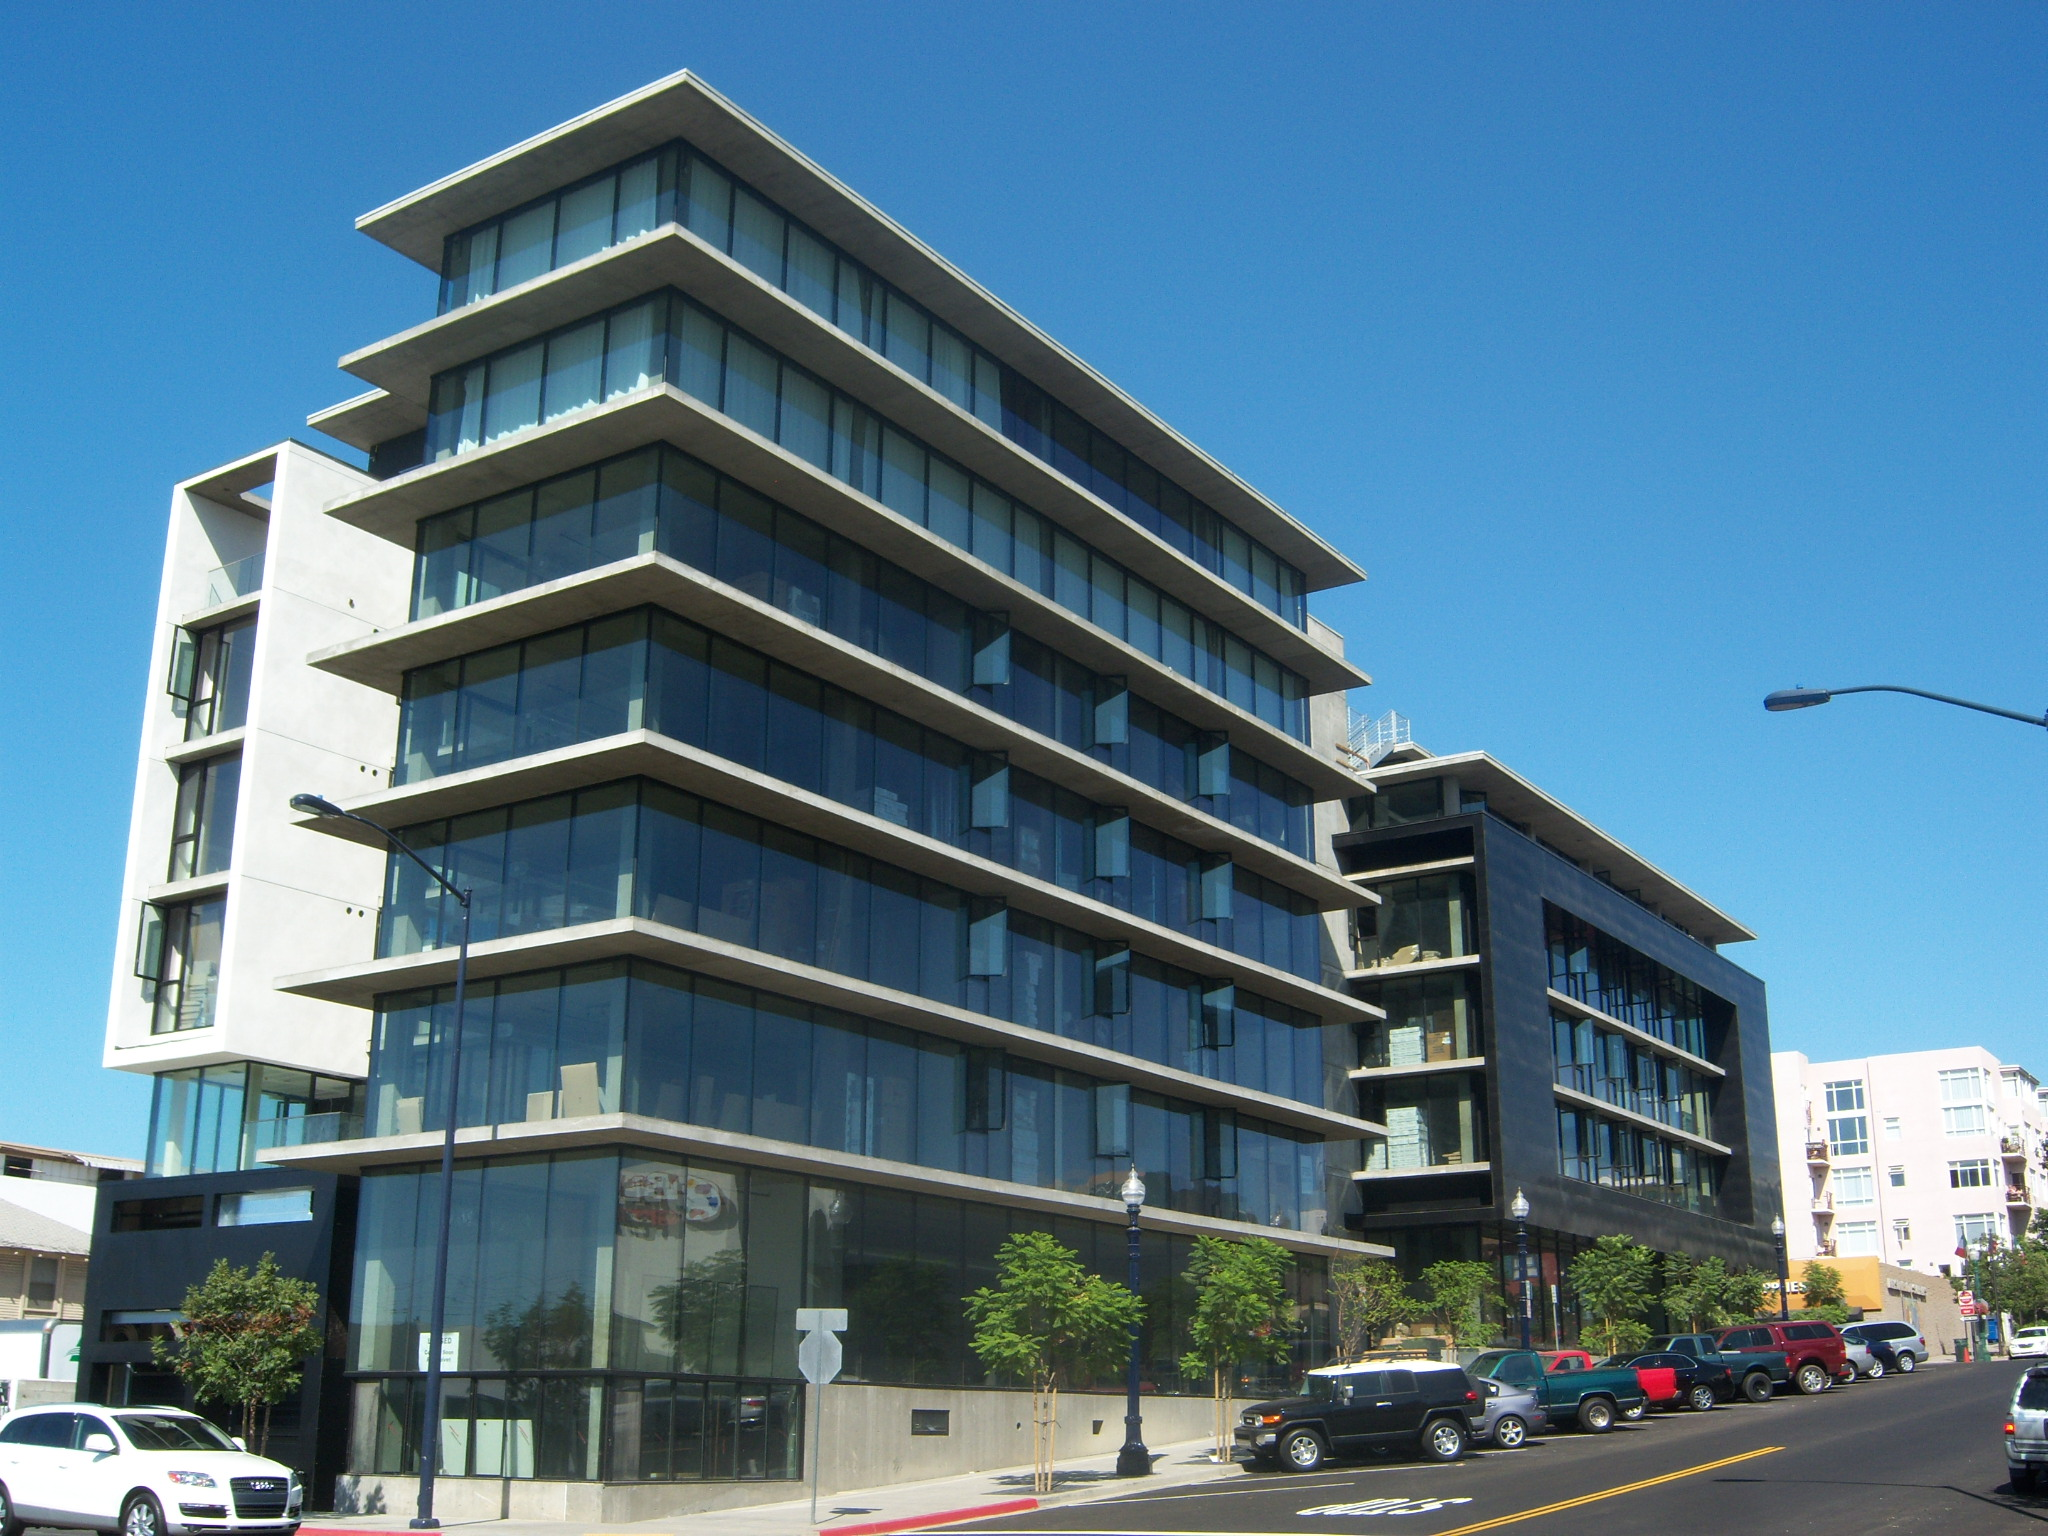 This new mixed use building in SD's Little Italy is called the Q.